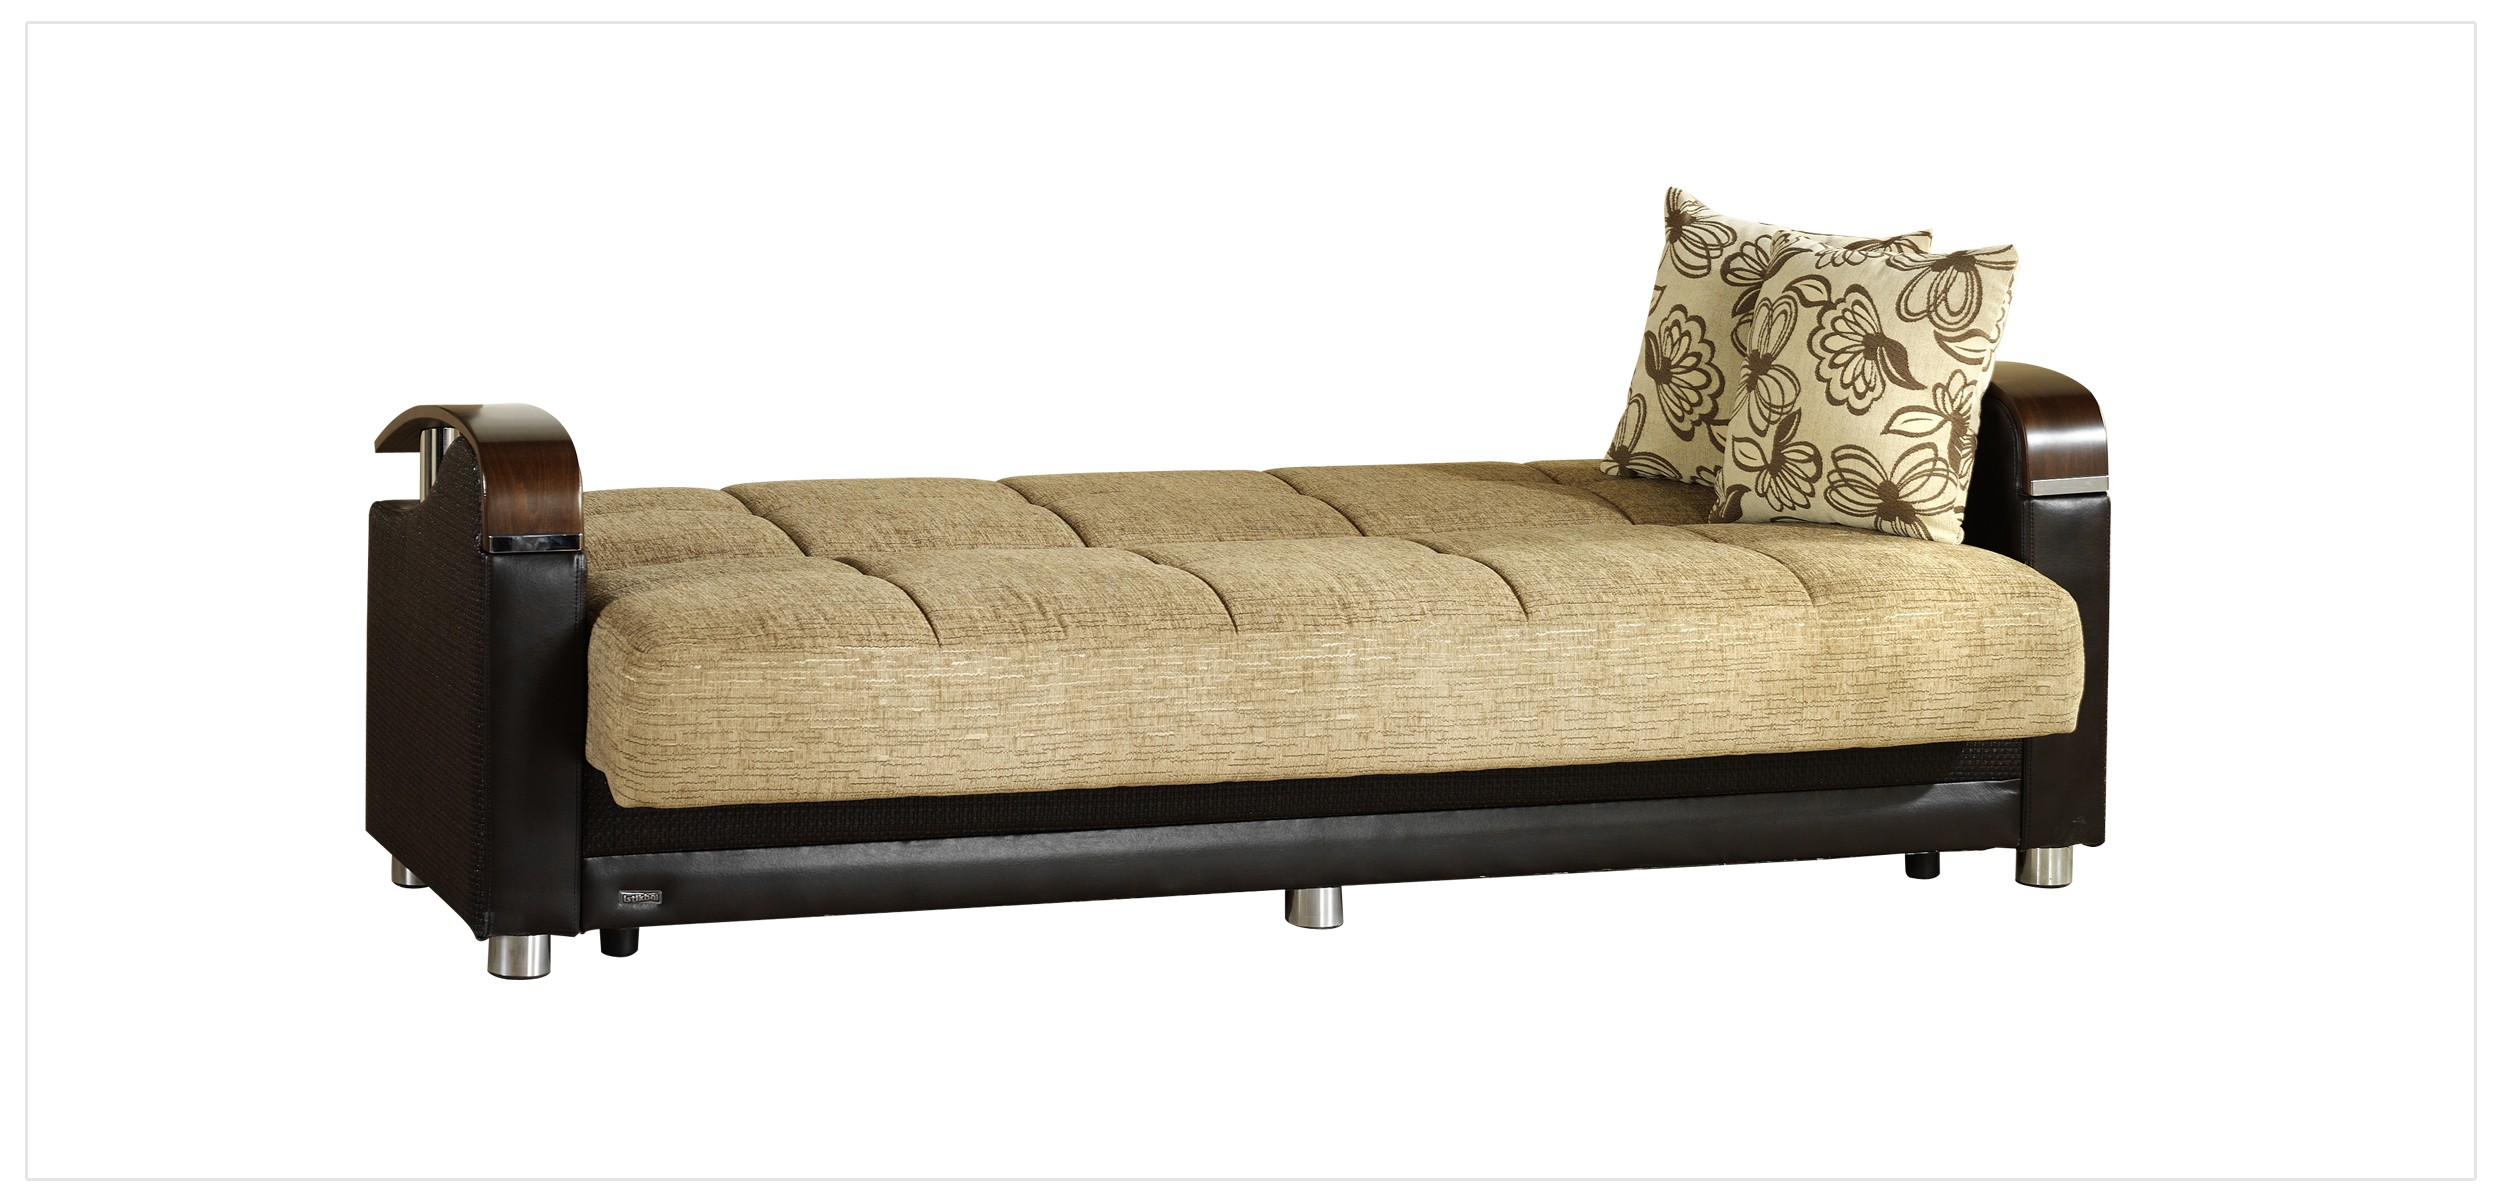 Luna Fulya Brown Convertible Sofa Bed With Storage